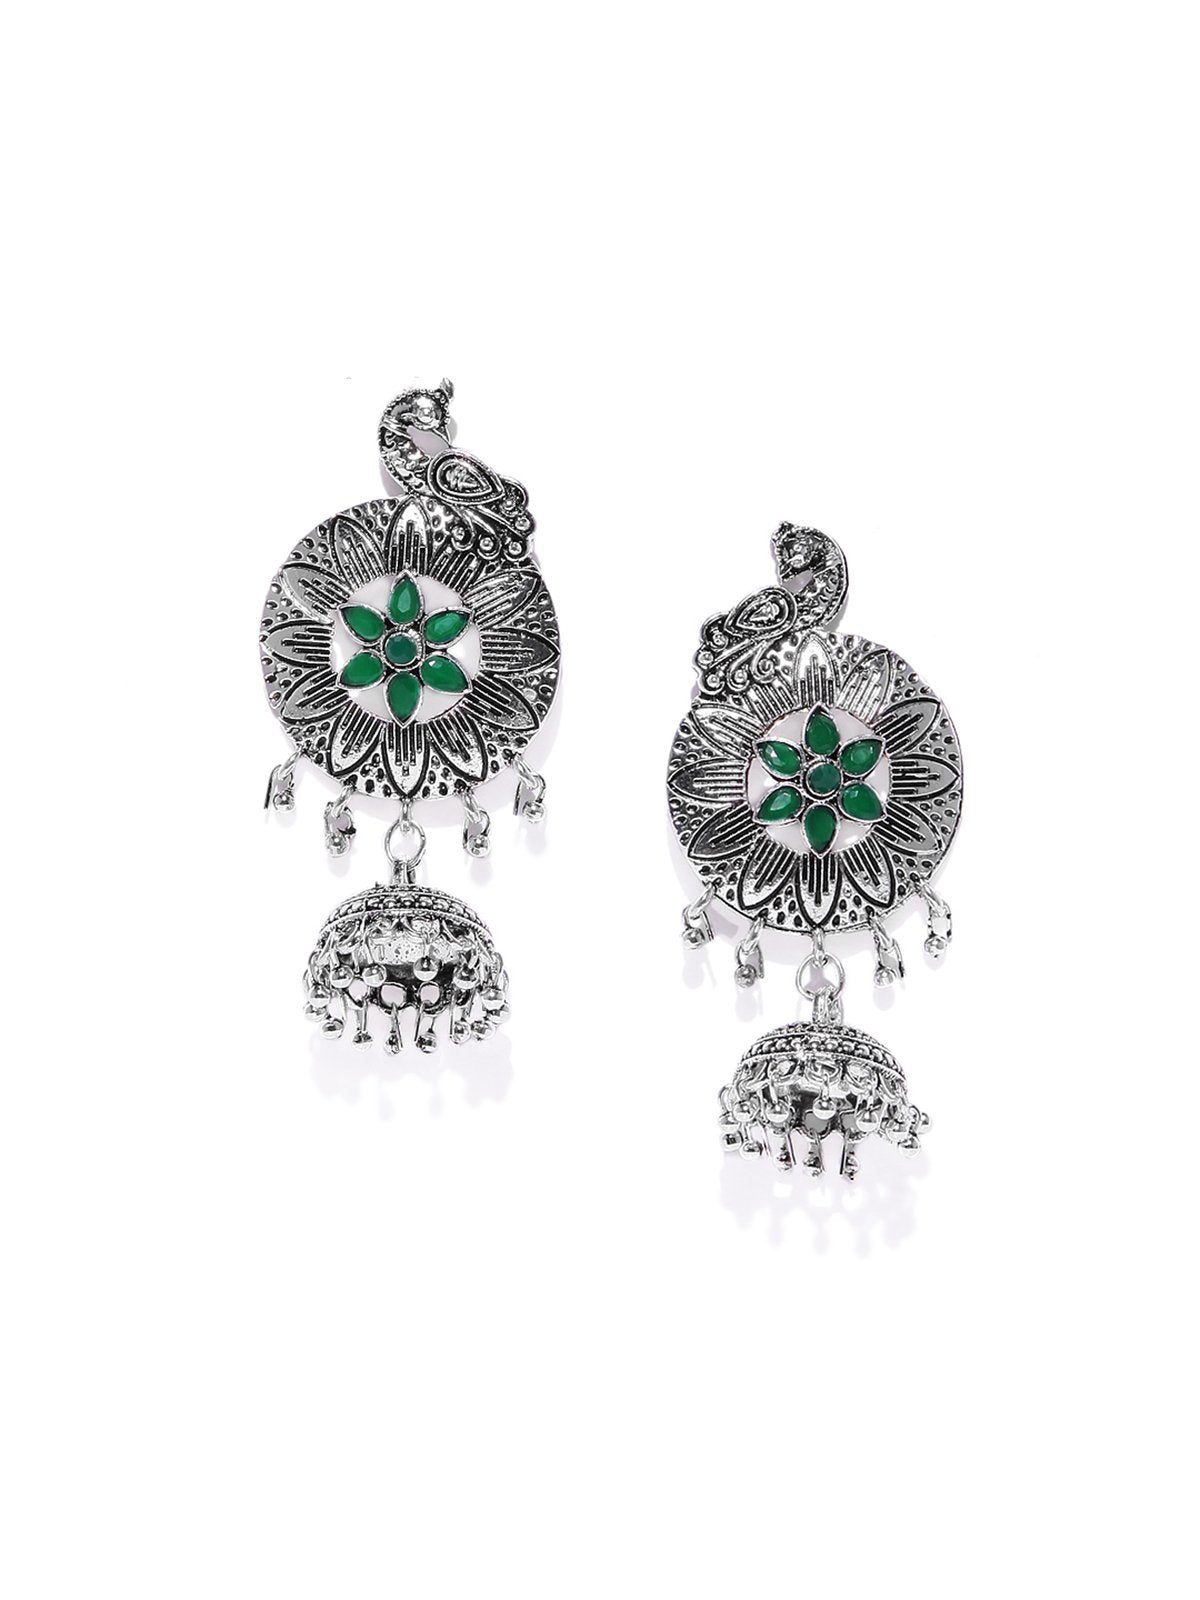 Antique Silver Tone Peacock Inspired Jhumka Earring